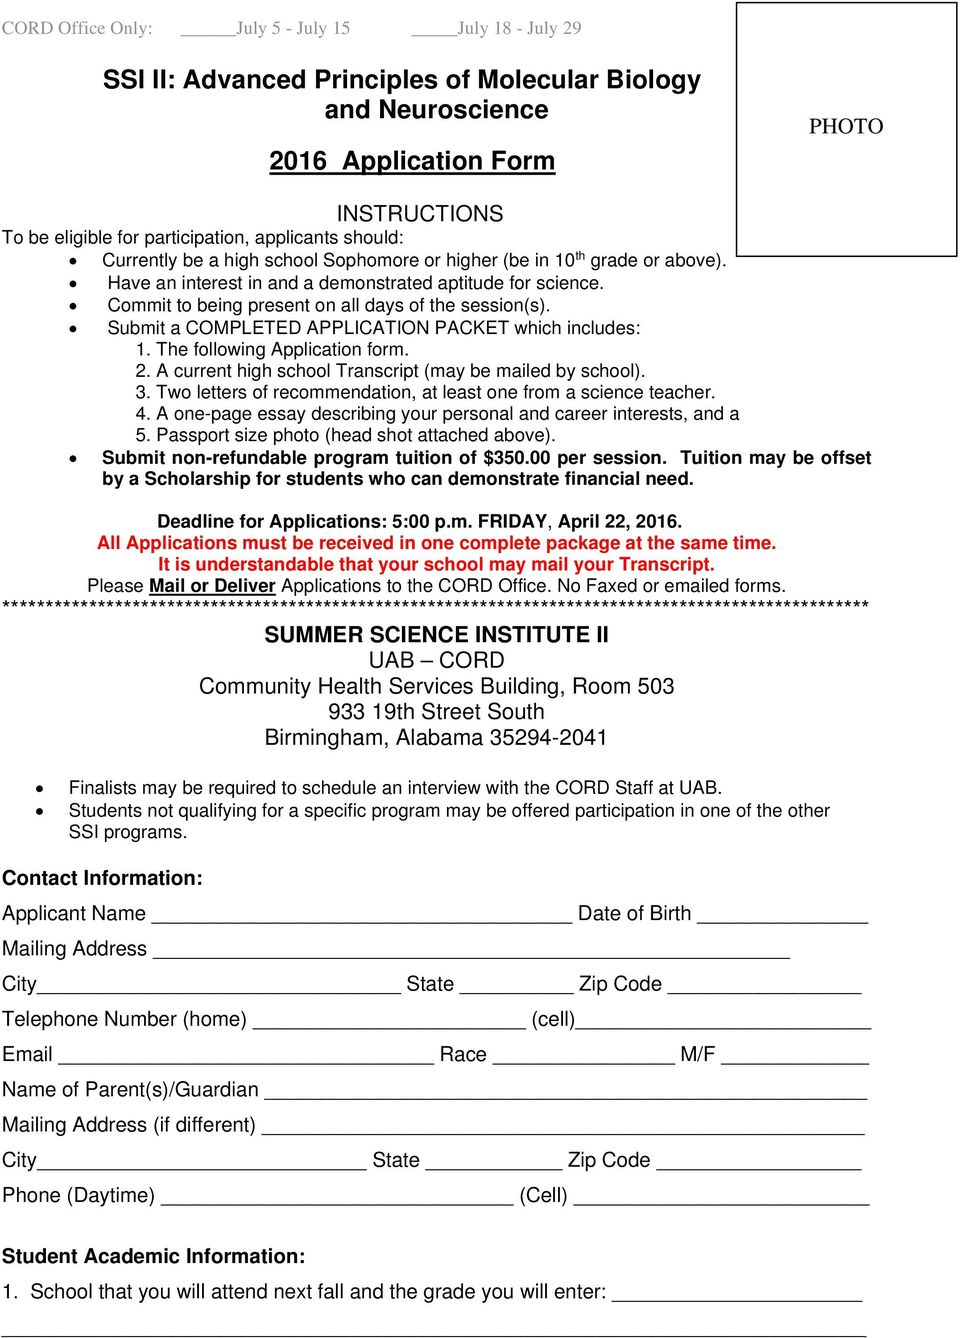 Submit a COMPLETED APPLICATION PACKET which includes: 1. The following Application form. 2. A current high school Transcript (may be mailed by school). 3.